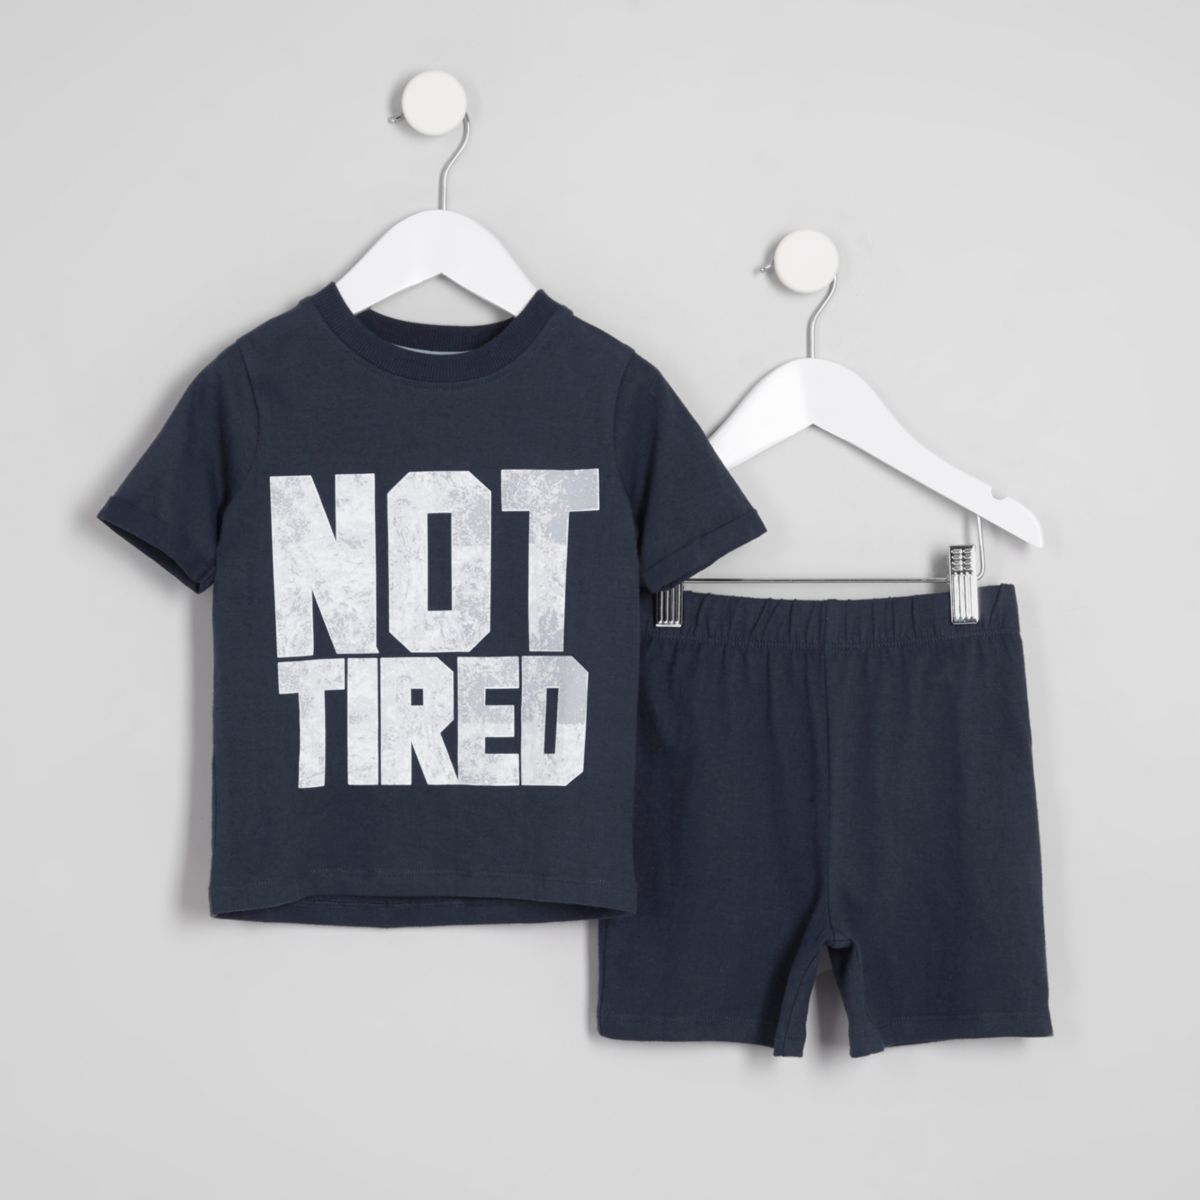 Ensemble de pyjama imprimé « not tired » bleu marine mini garçon